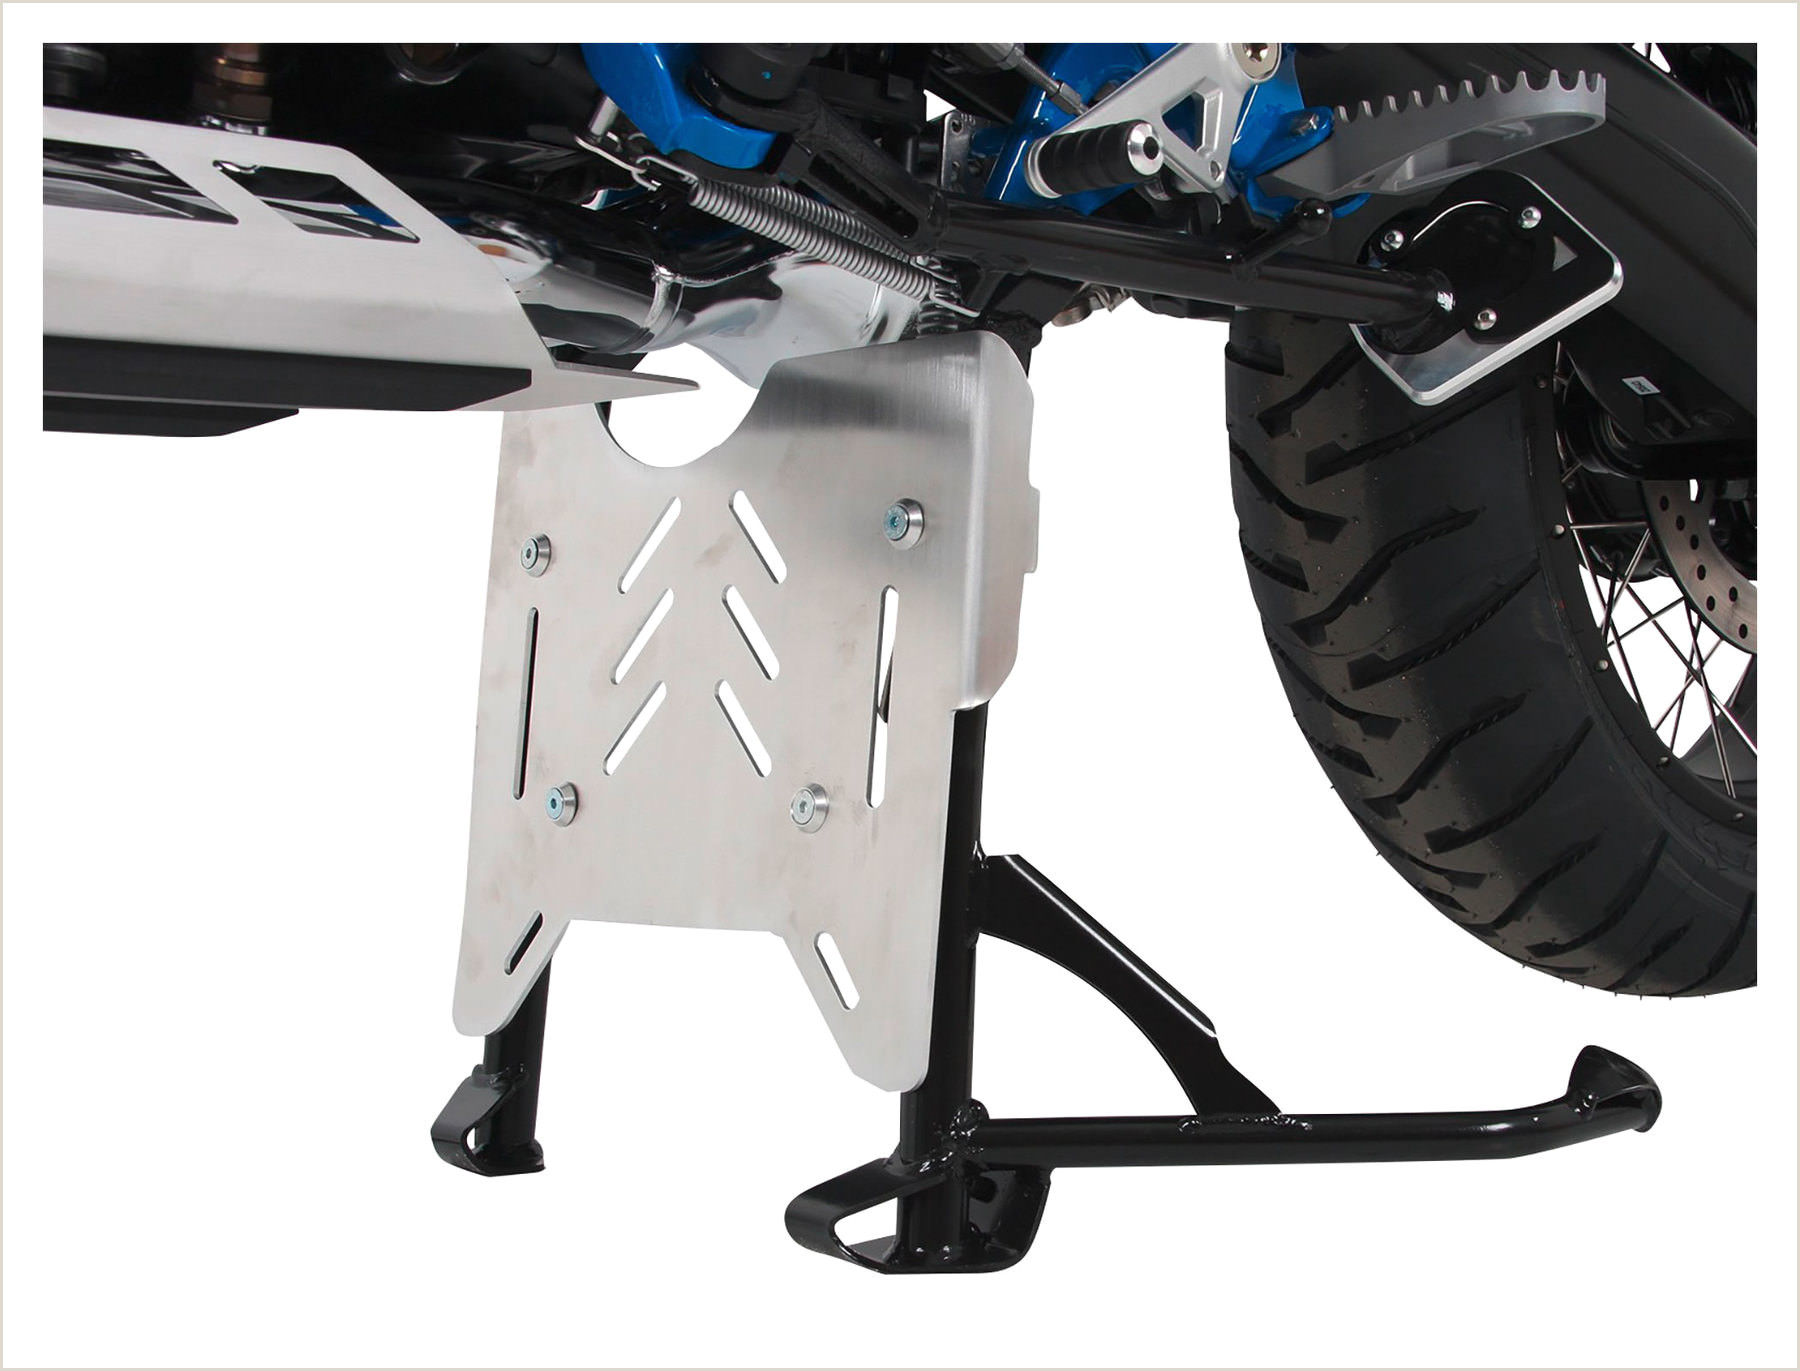 Cheap Picture Stands Hepco&becker Aluminium Protection Plate For Center Stand Bmw R 1200 Gs 13 18